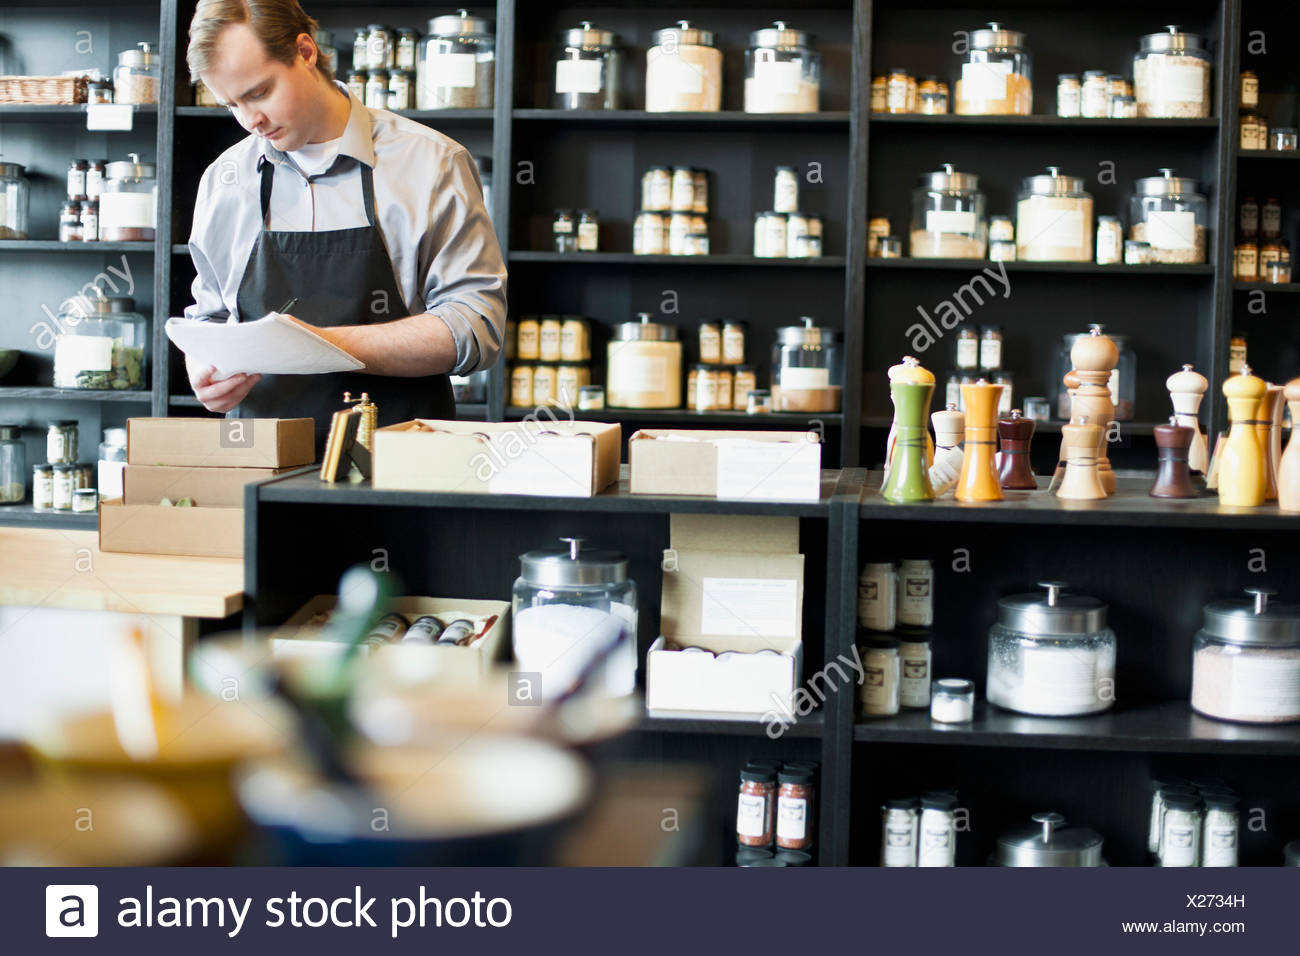 merchant doing paperwork in spice store - Stock Image